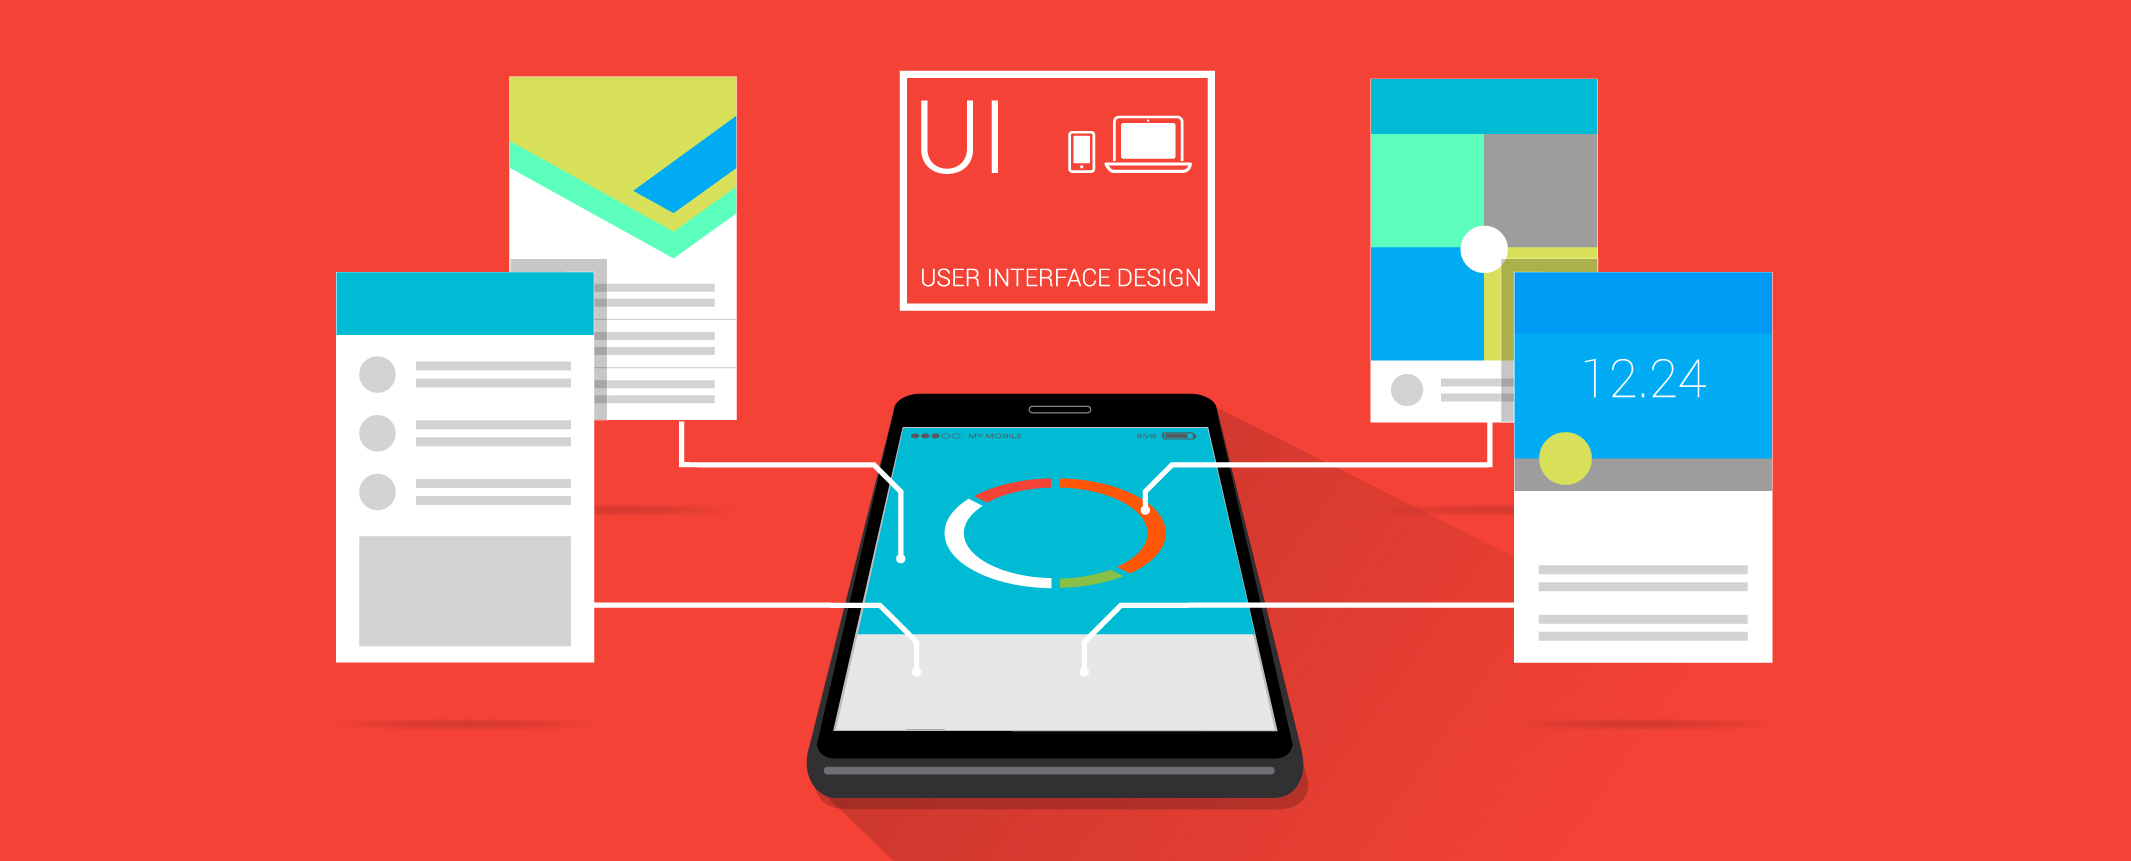 7 UX / UI Design Tips to Improve Your Startup Growth